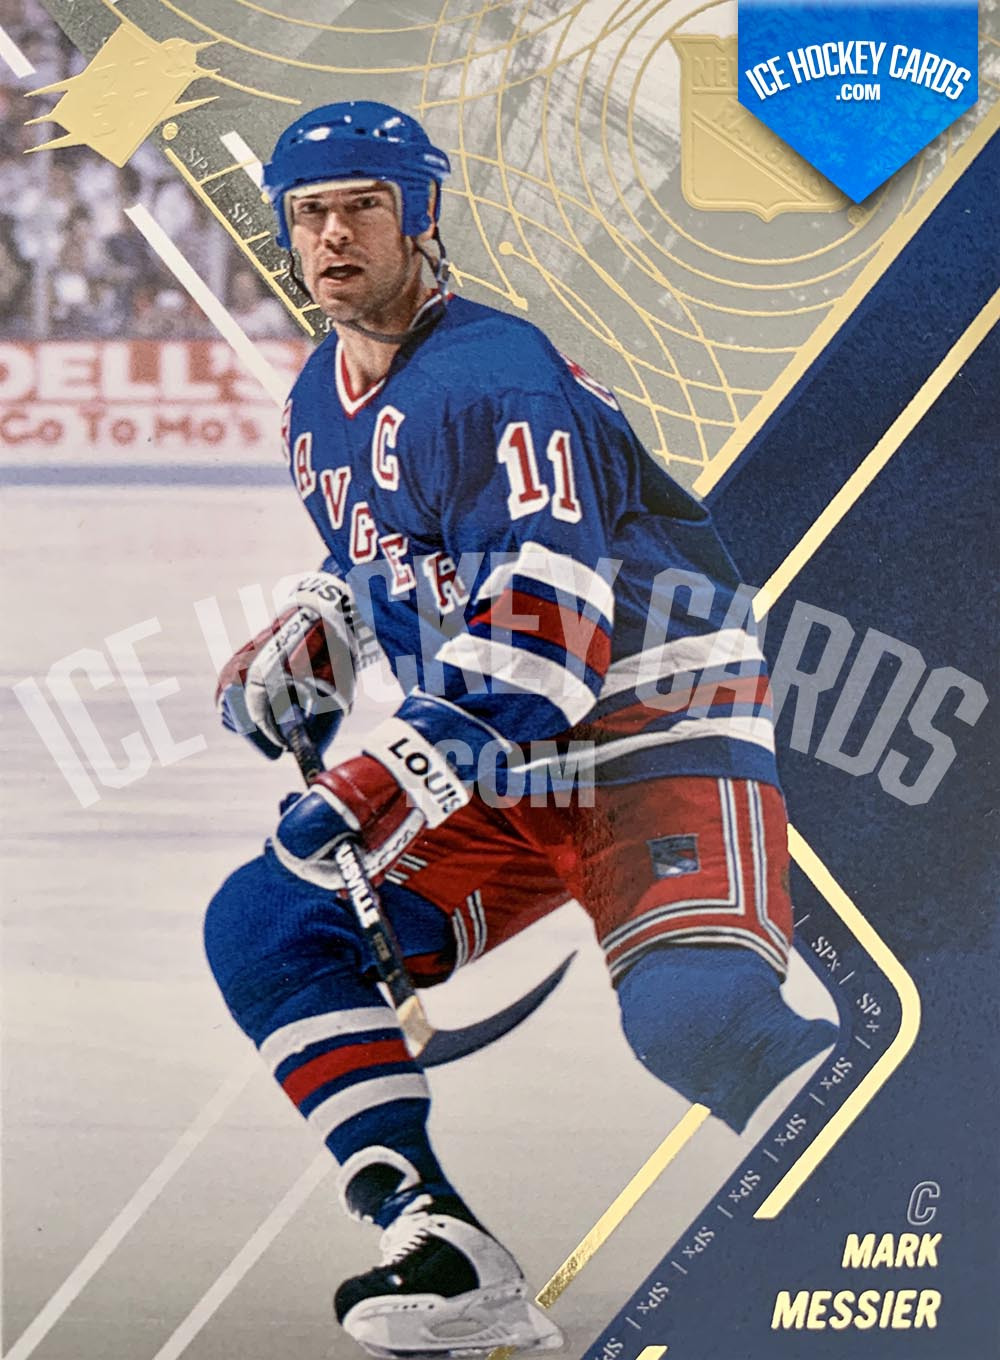 Upper Deck - SPx 2015-16 - Mark Messier Base Card